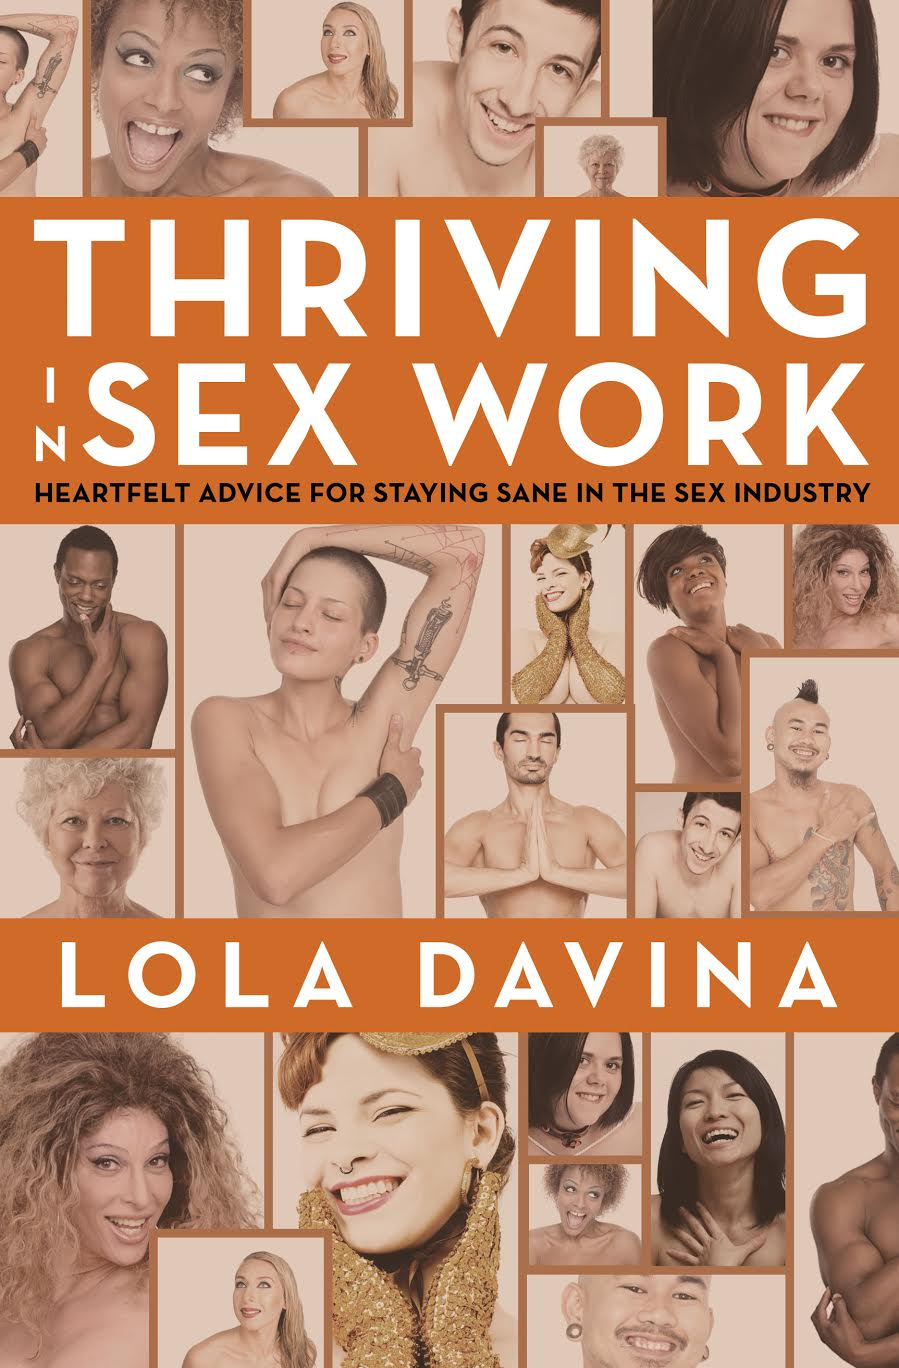 Front and back covers of Thriving in Sex Work: Heartfelt Advice for Staying Sane in the Sex Industry; Design by Albert Ochosa.